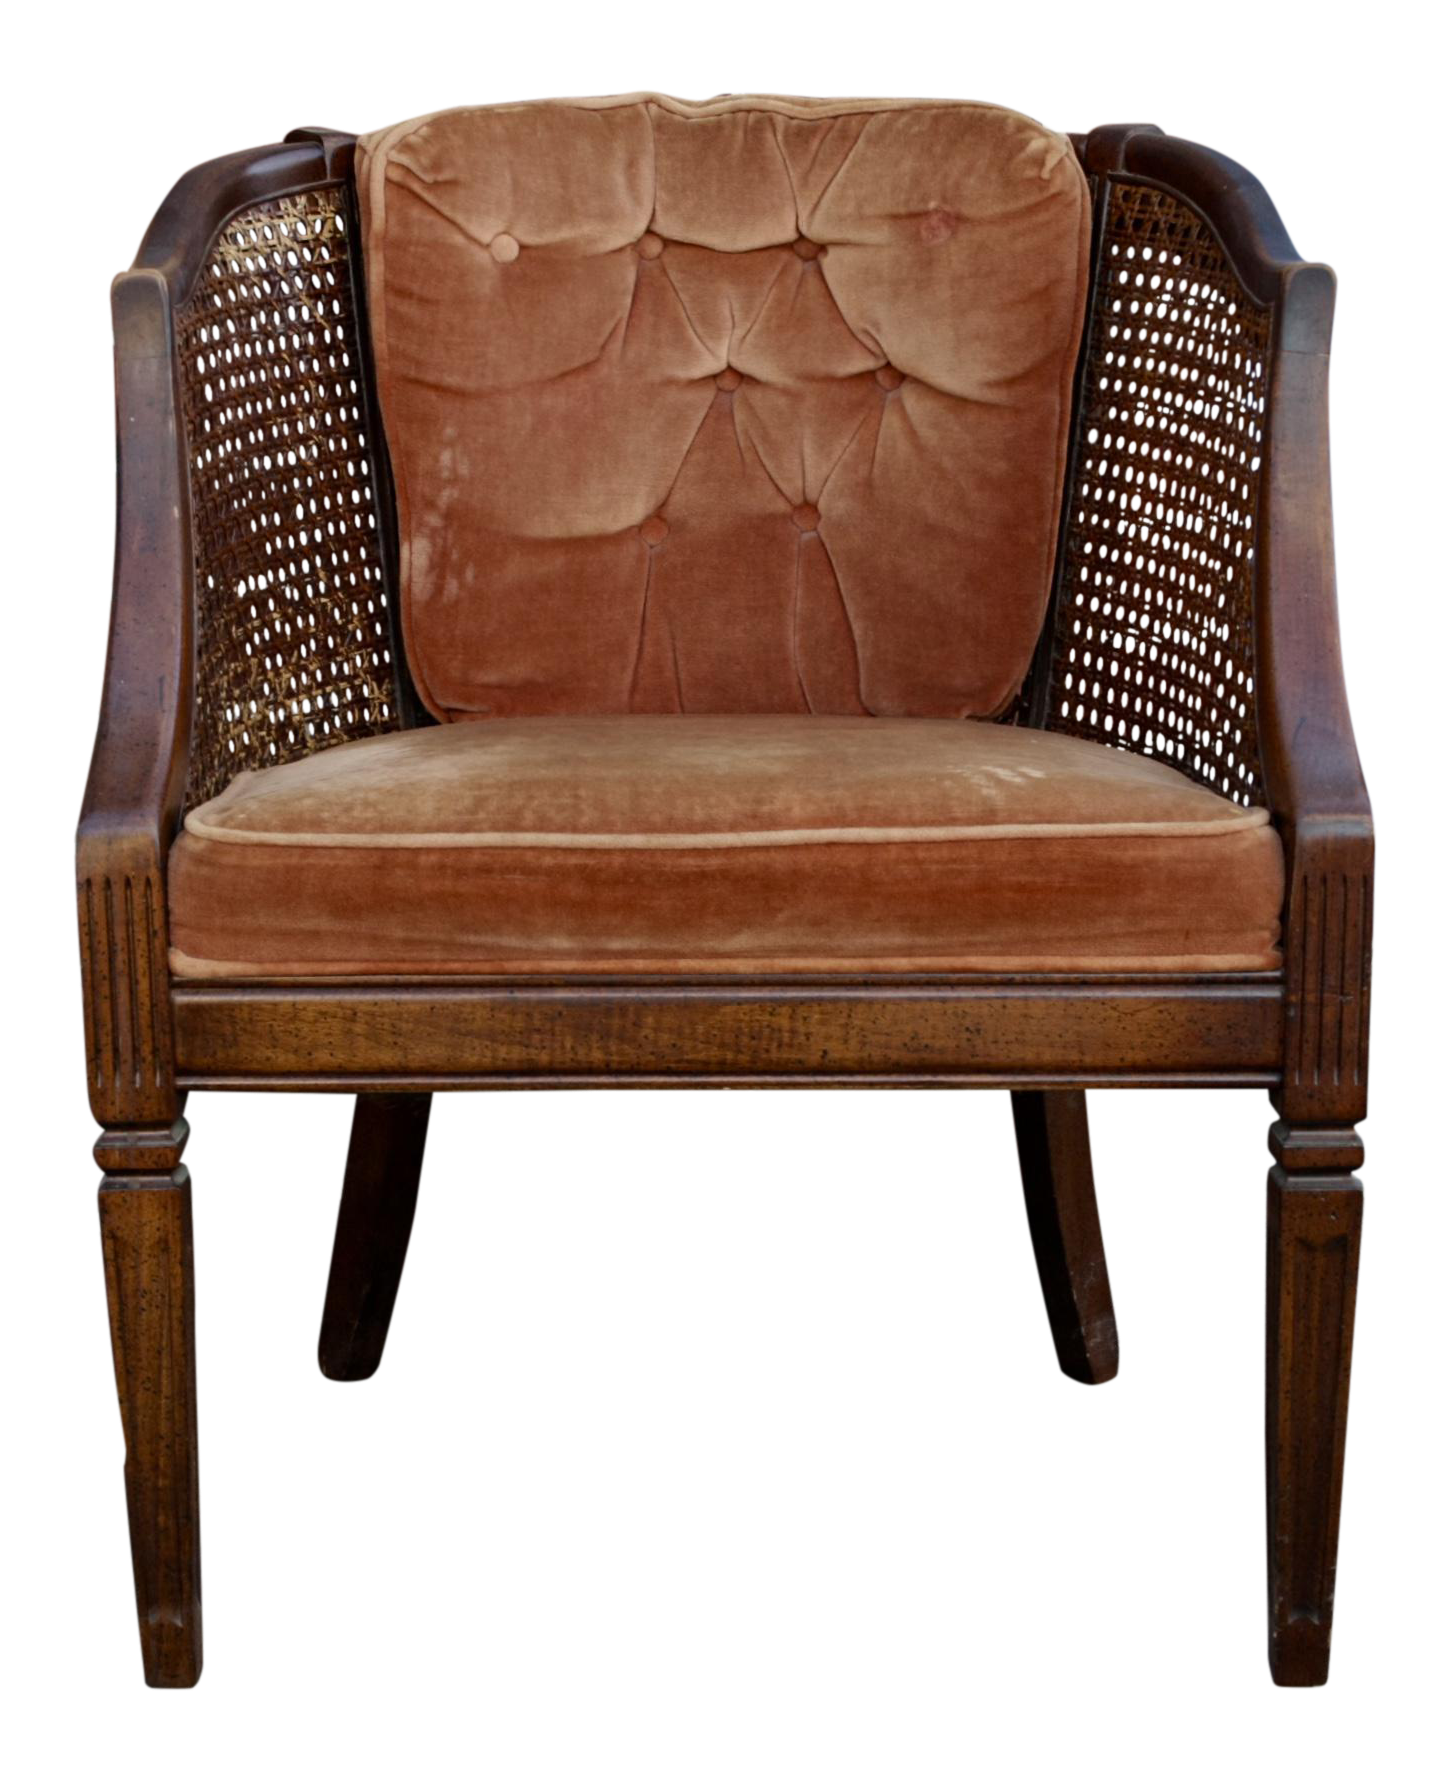 Sturdy Wood & Cane Chair with Velvet Upholstery Chair